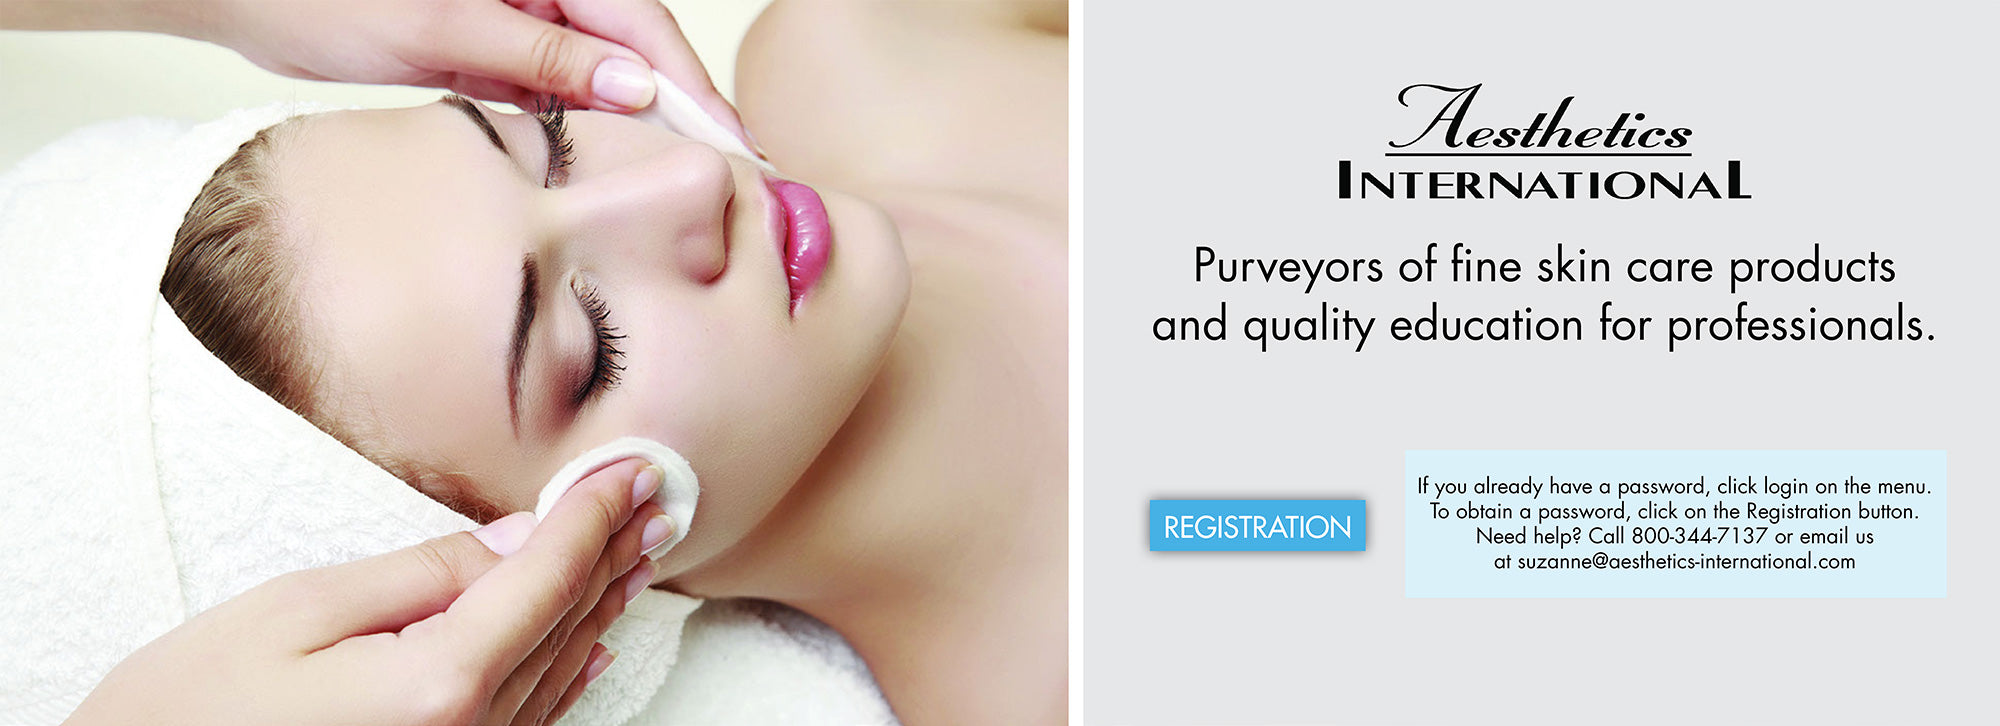 Aesthetics International products for skin care professionals - Registration